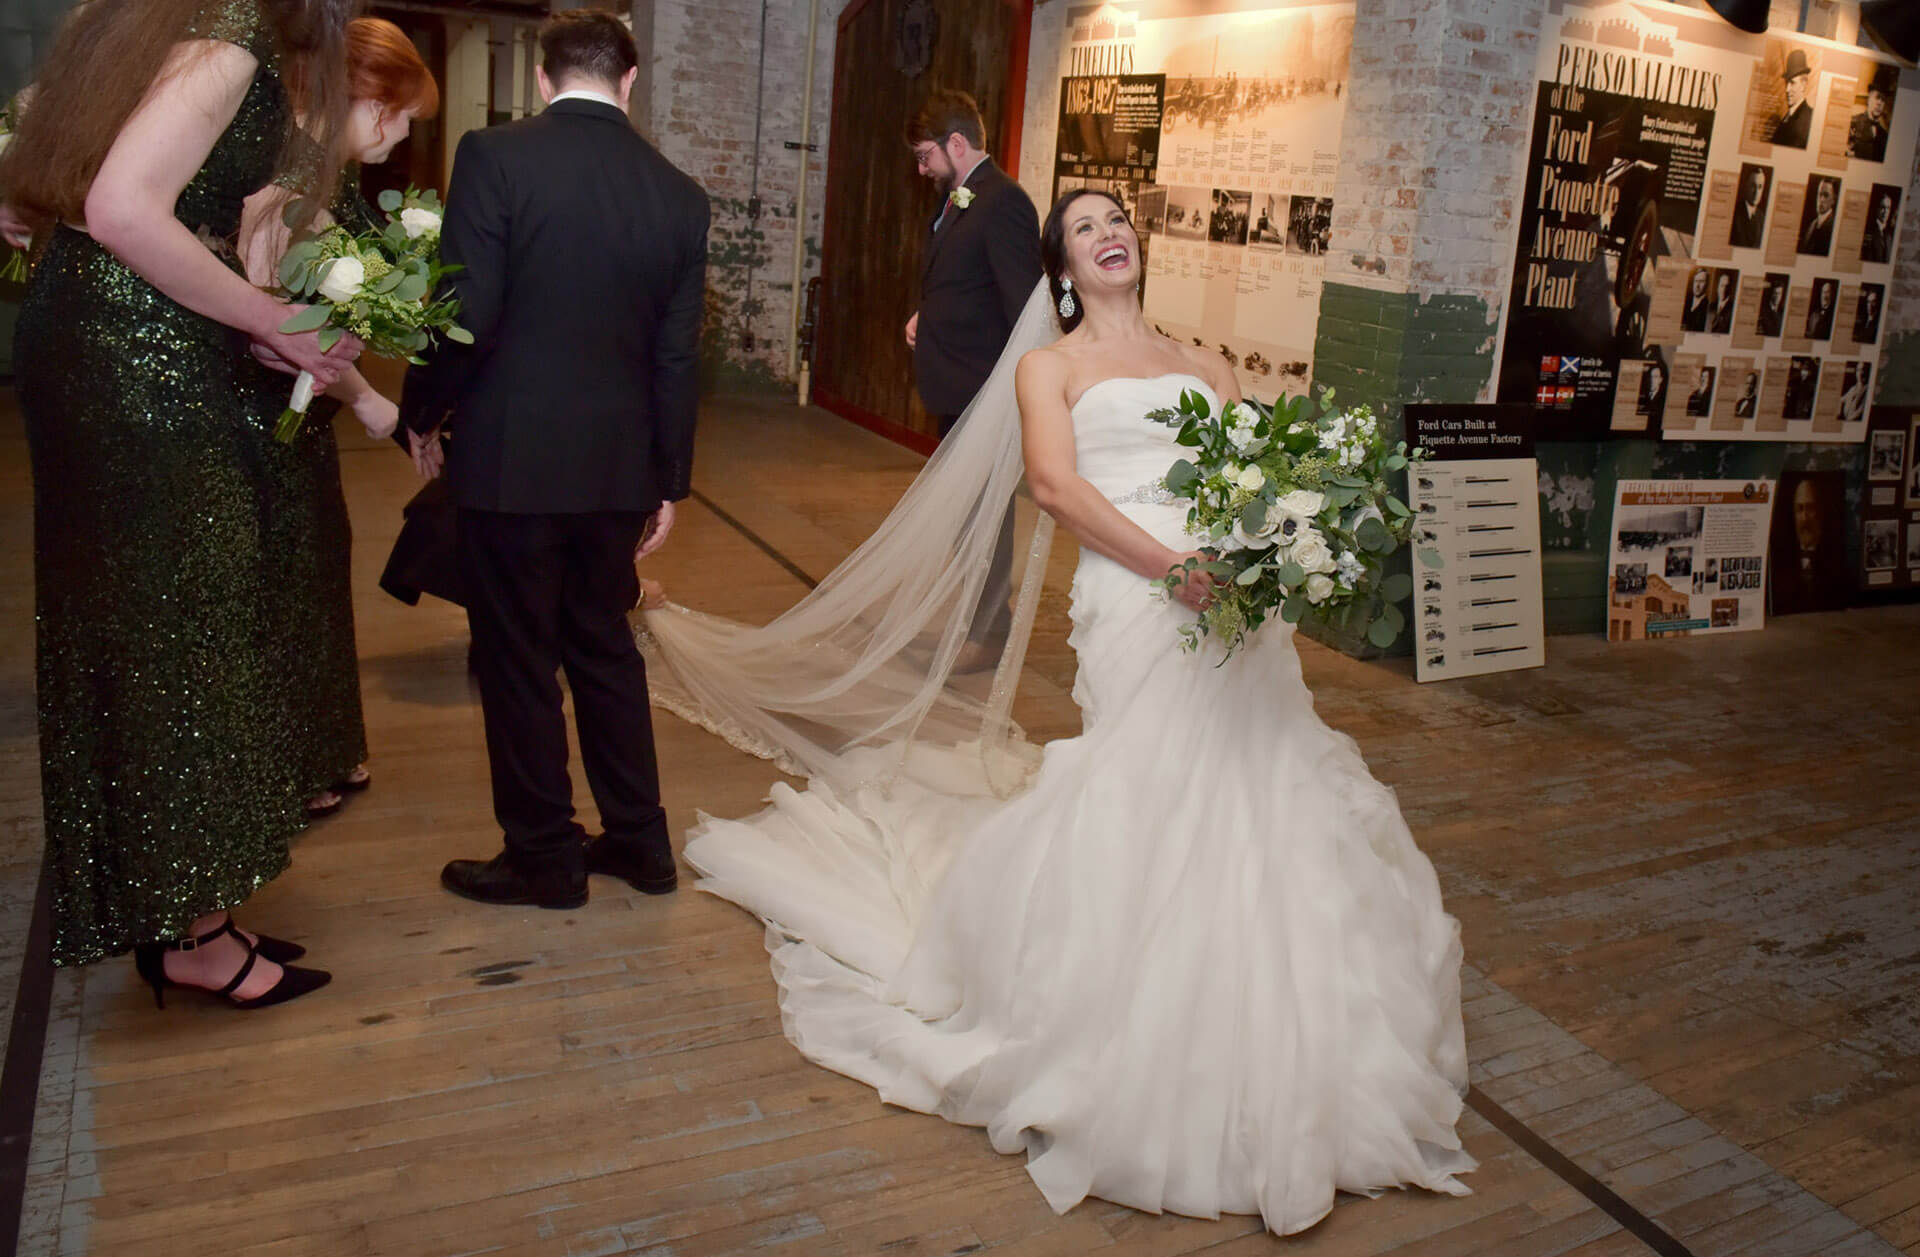 The bride's veil gets snagged on the floors during her winter wedding at the Ford Piquette Plant in Detroit, Michigan.